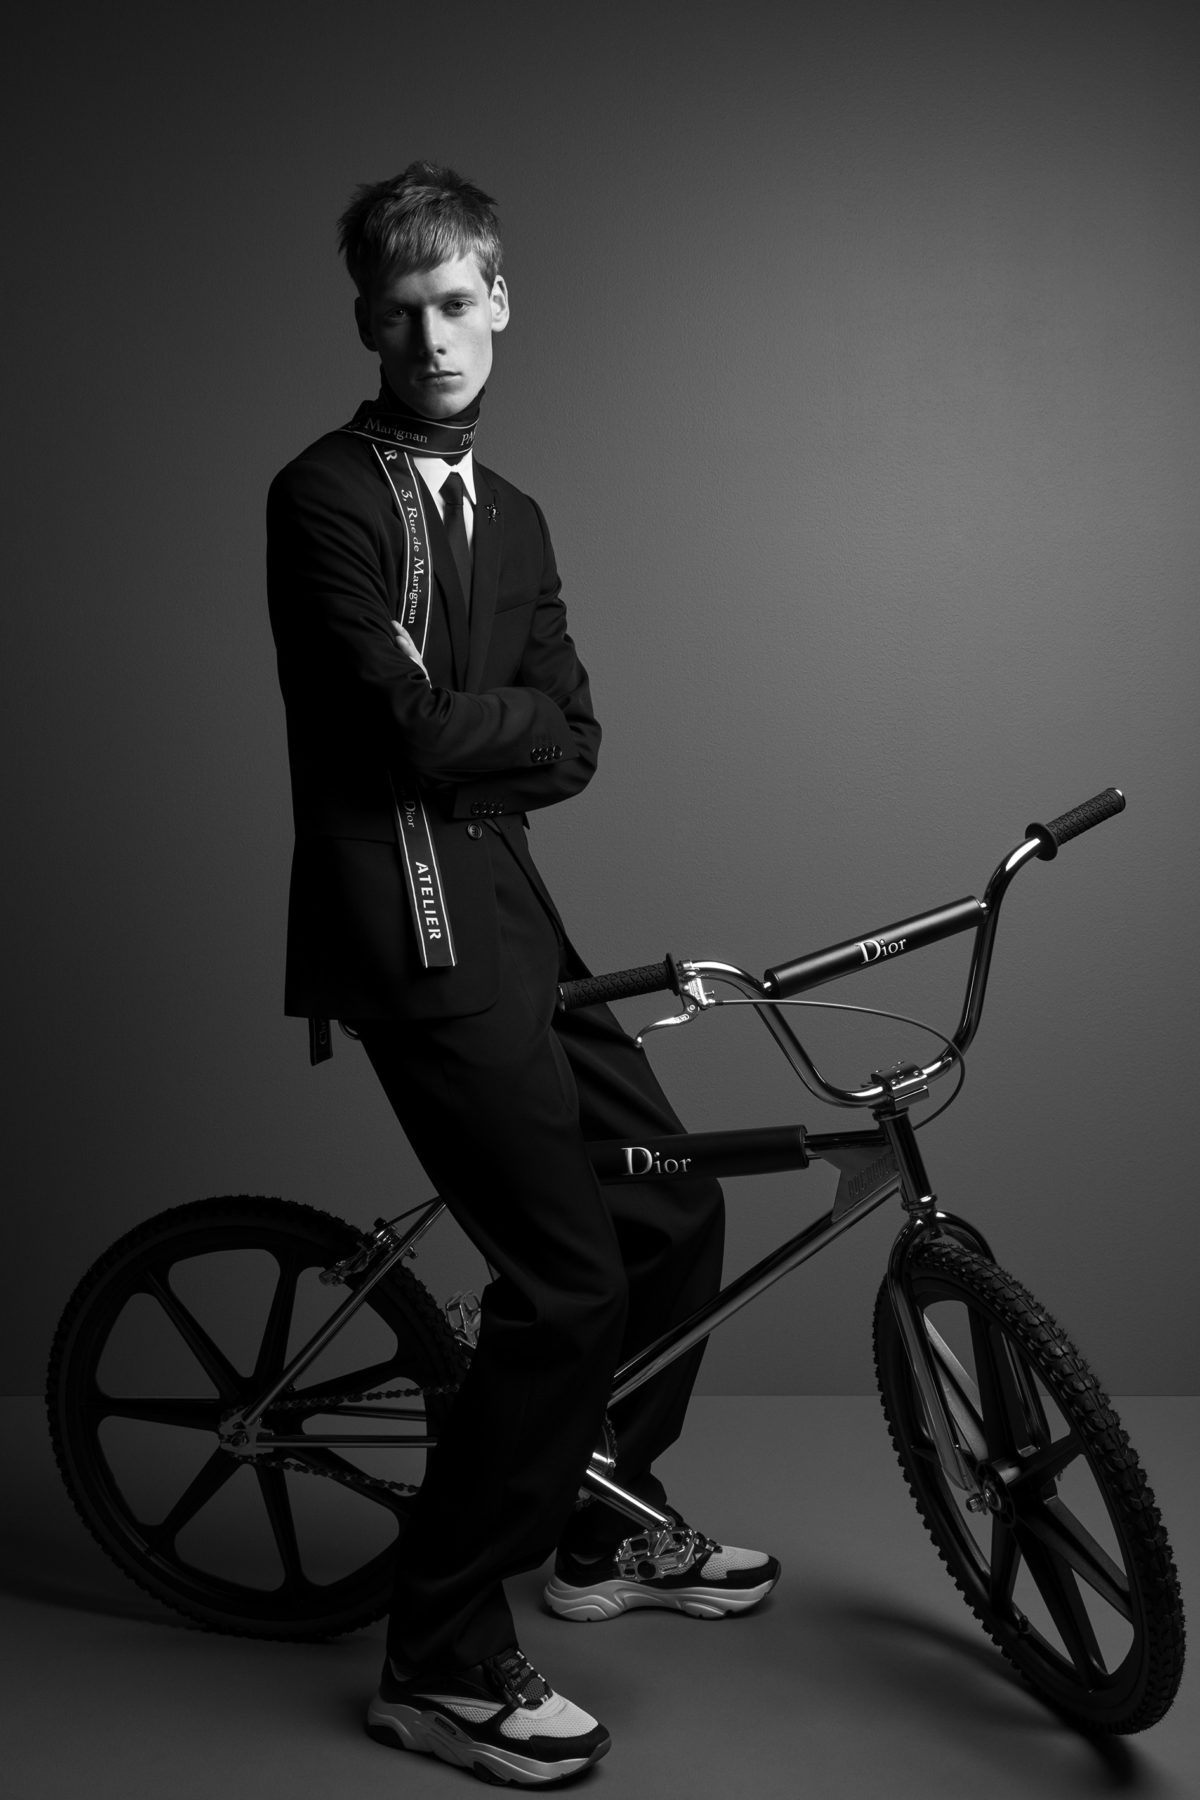 BMX Dior Bike Photo Sneakers Patrick Demarchelier Homme Luxe Diary Sole DXB